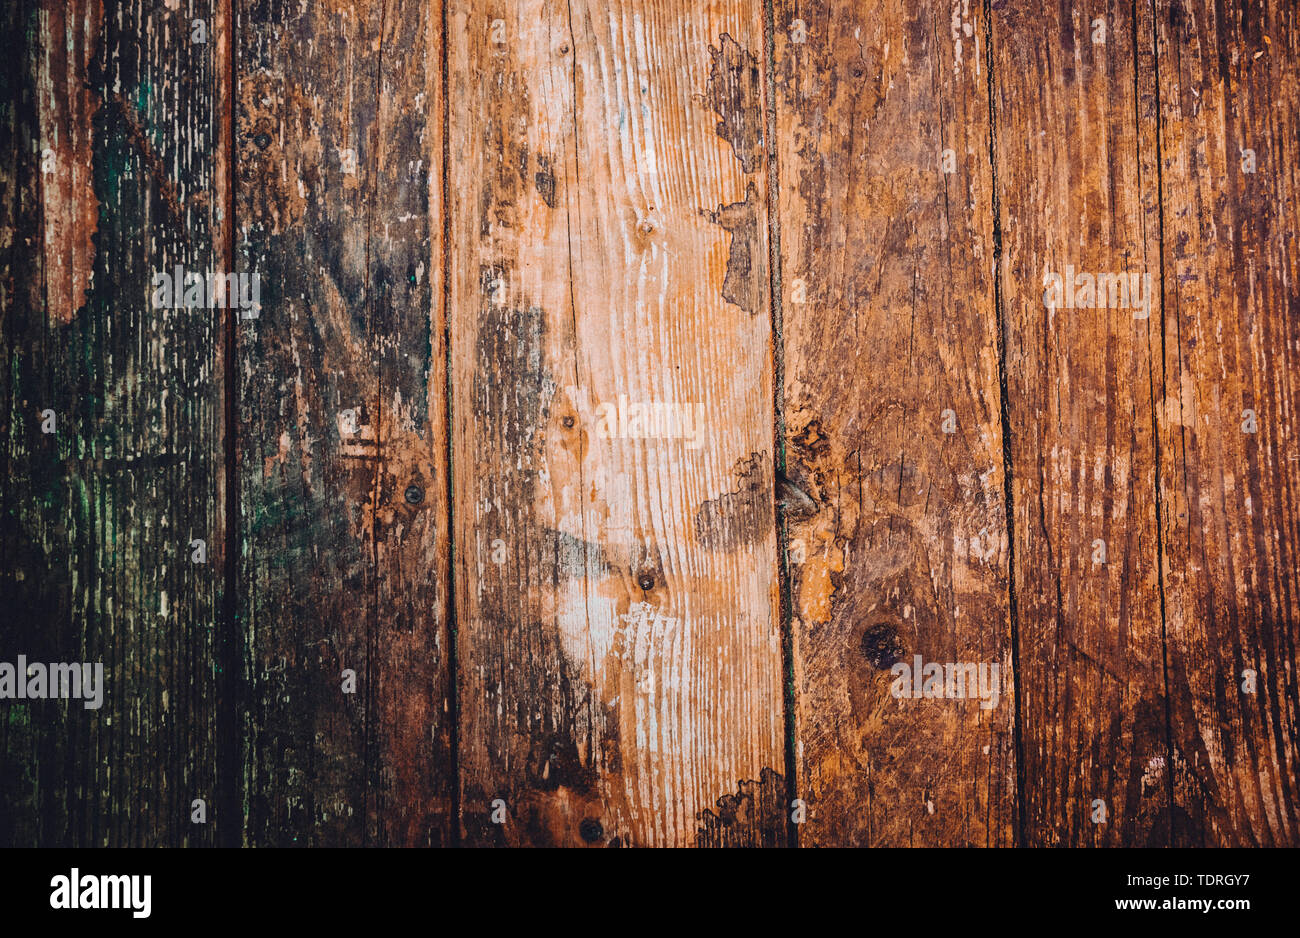 old and vertical wooden background of brown tones - Stock Image